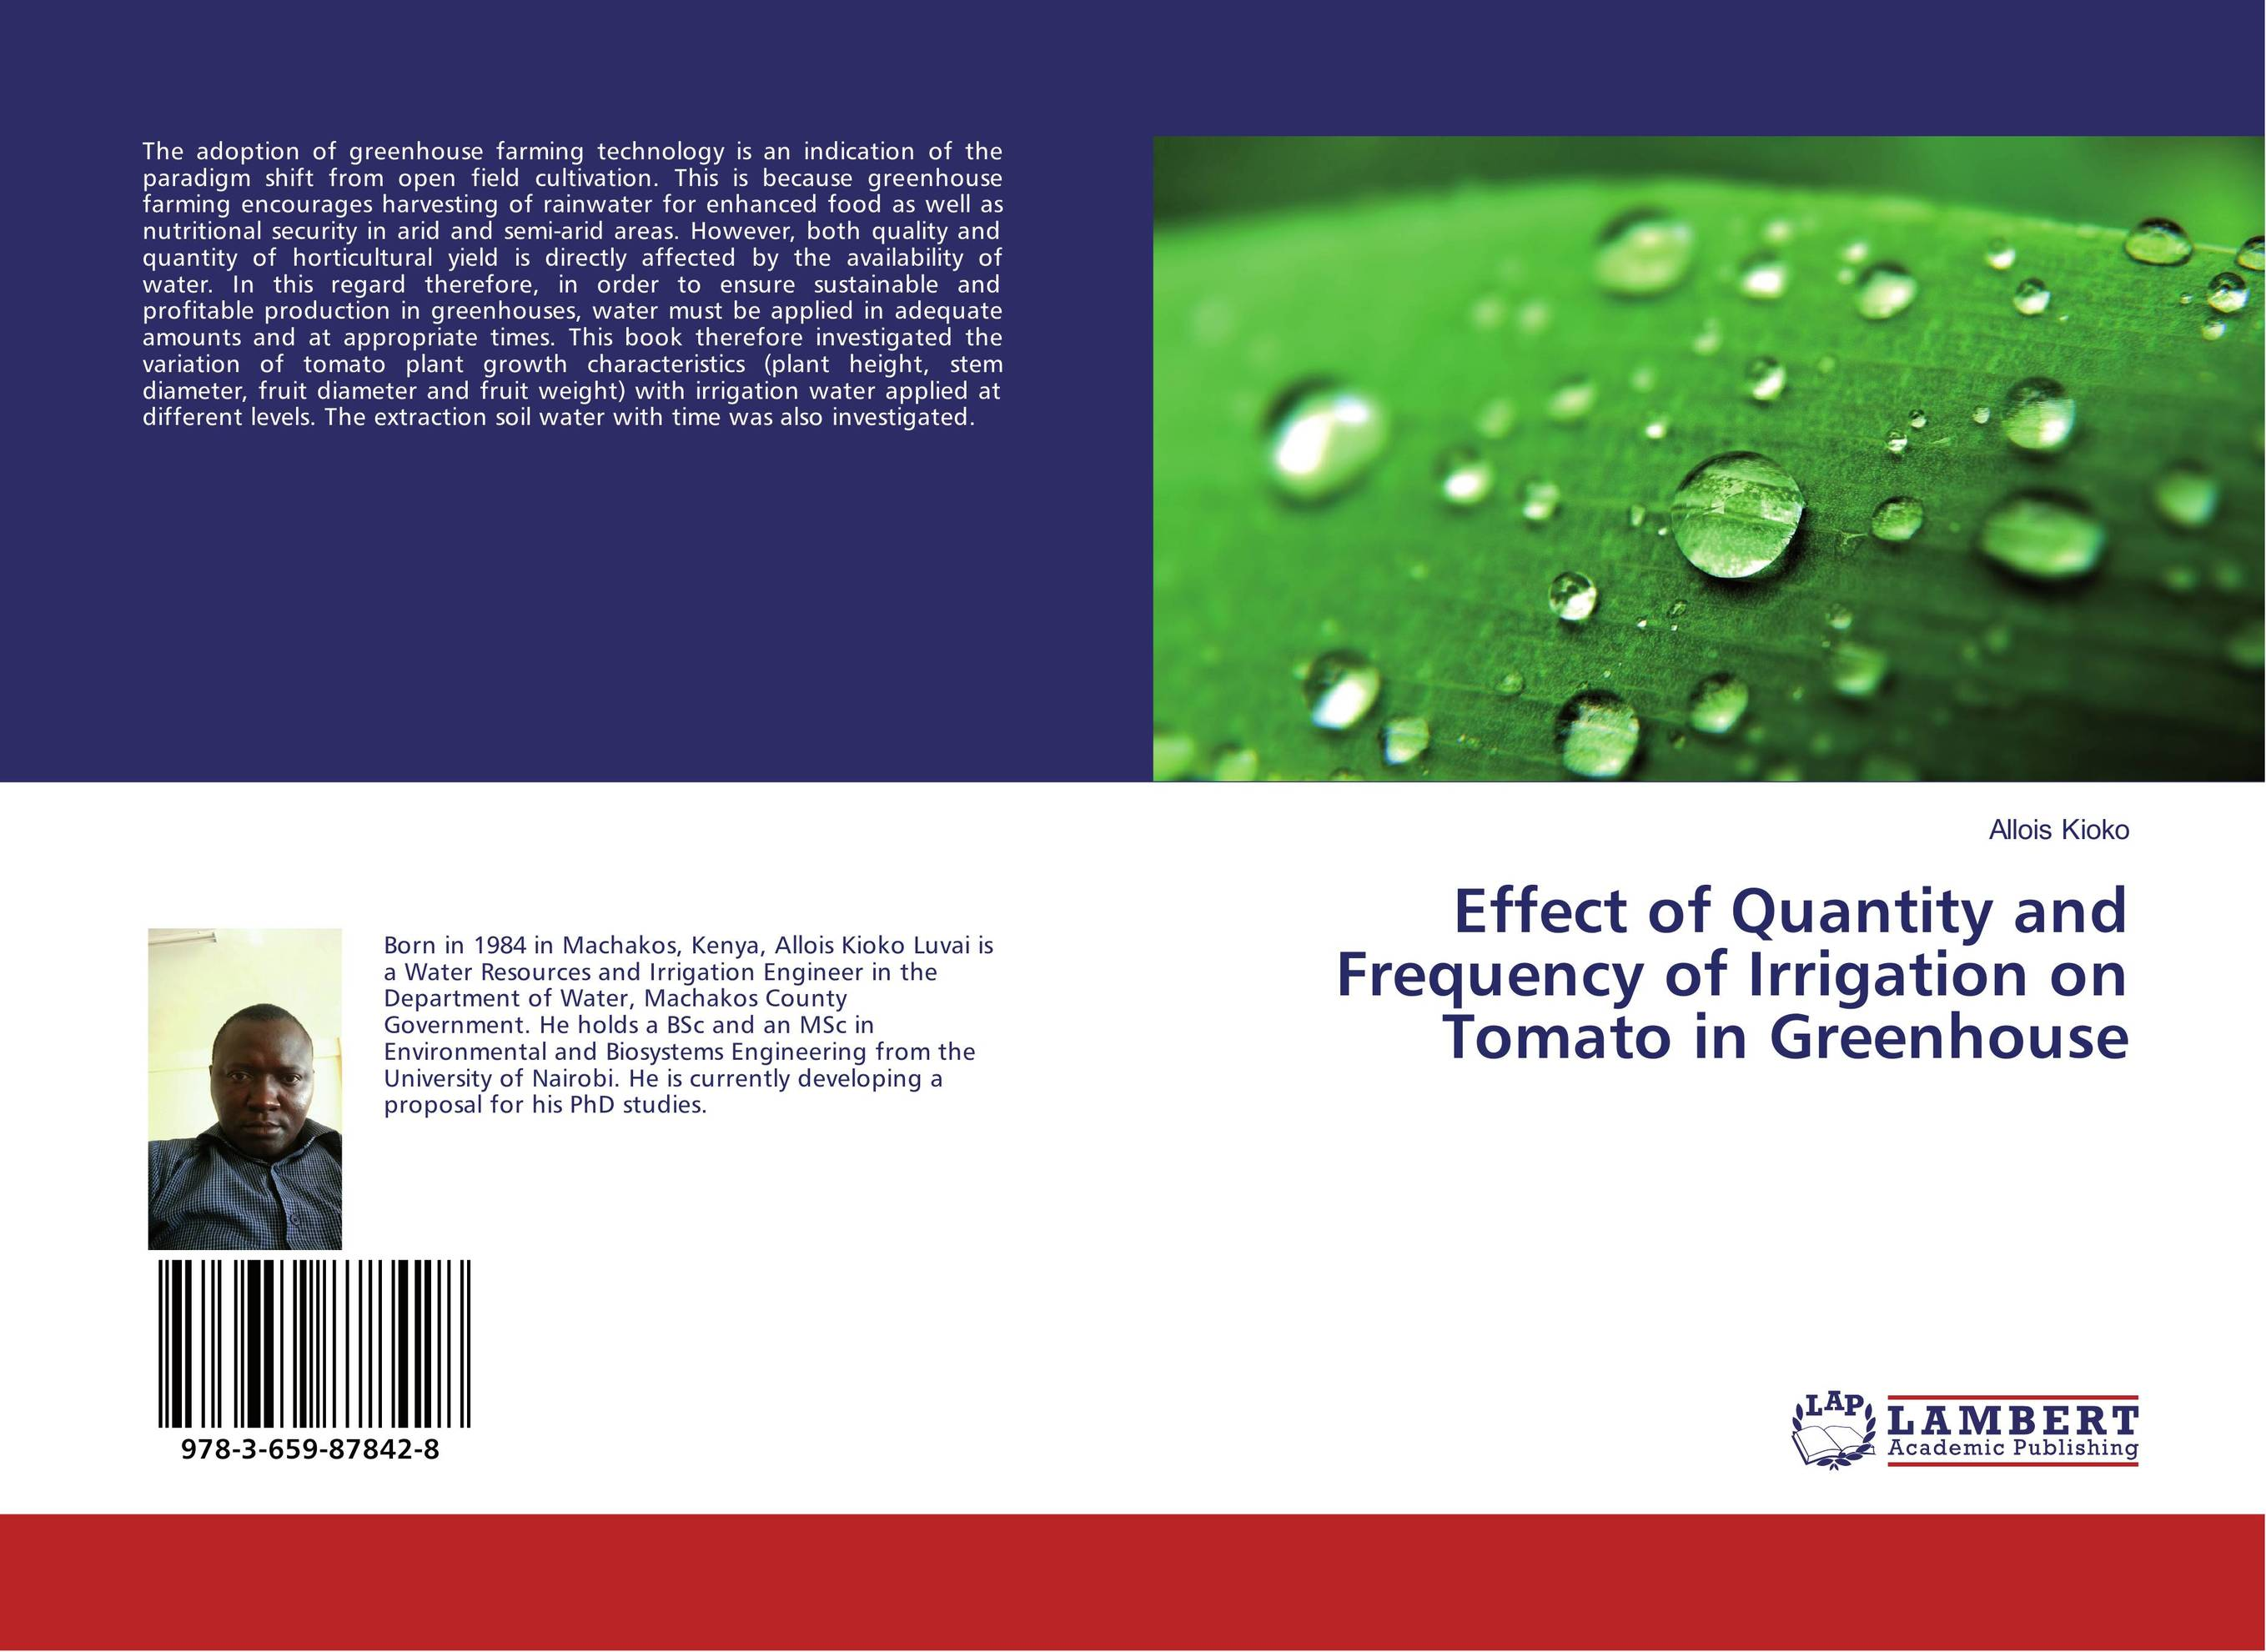 Effect of Quantity and Frequency of Irrigation on Tomato in Greenhouse ornamental plant production in recycled water